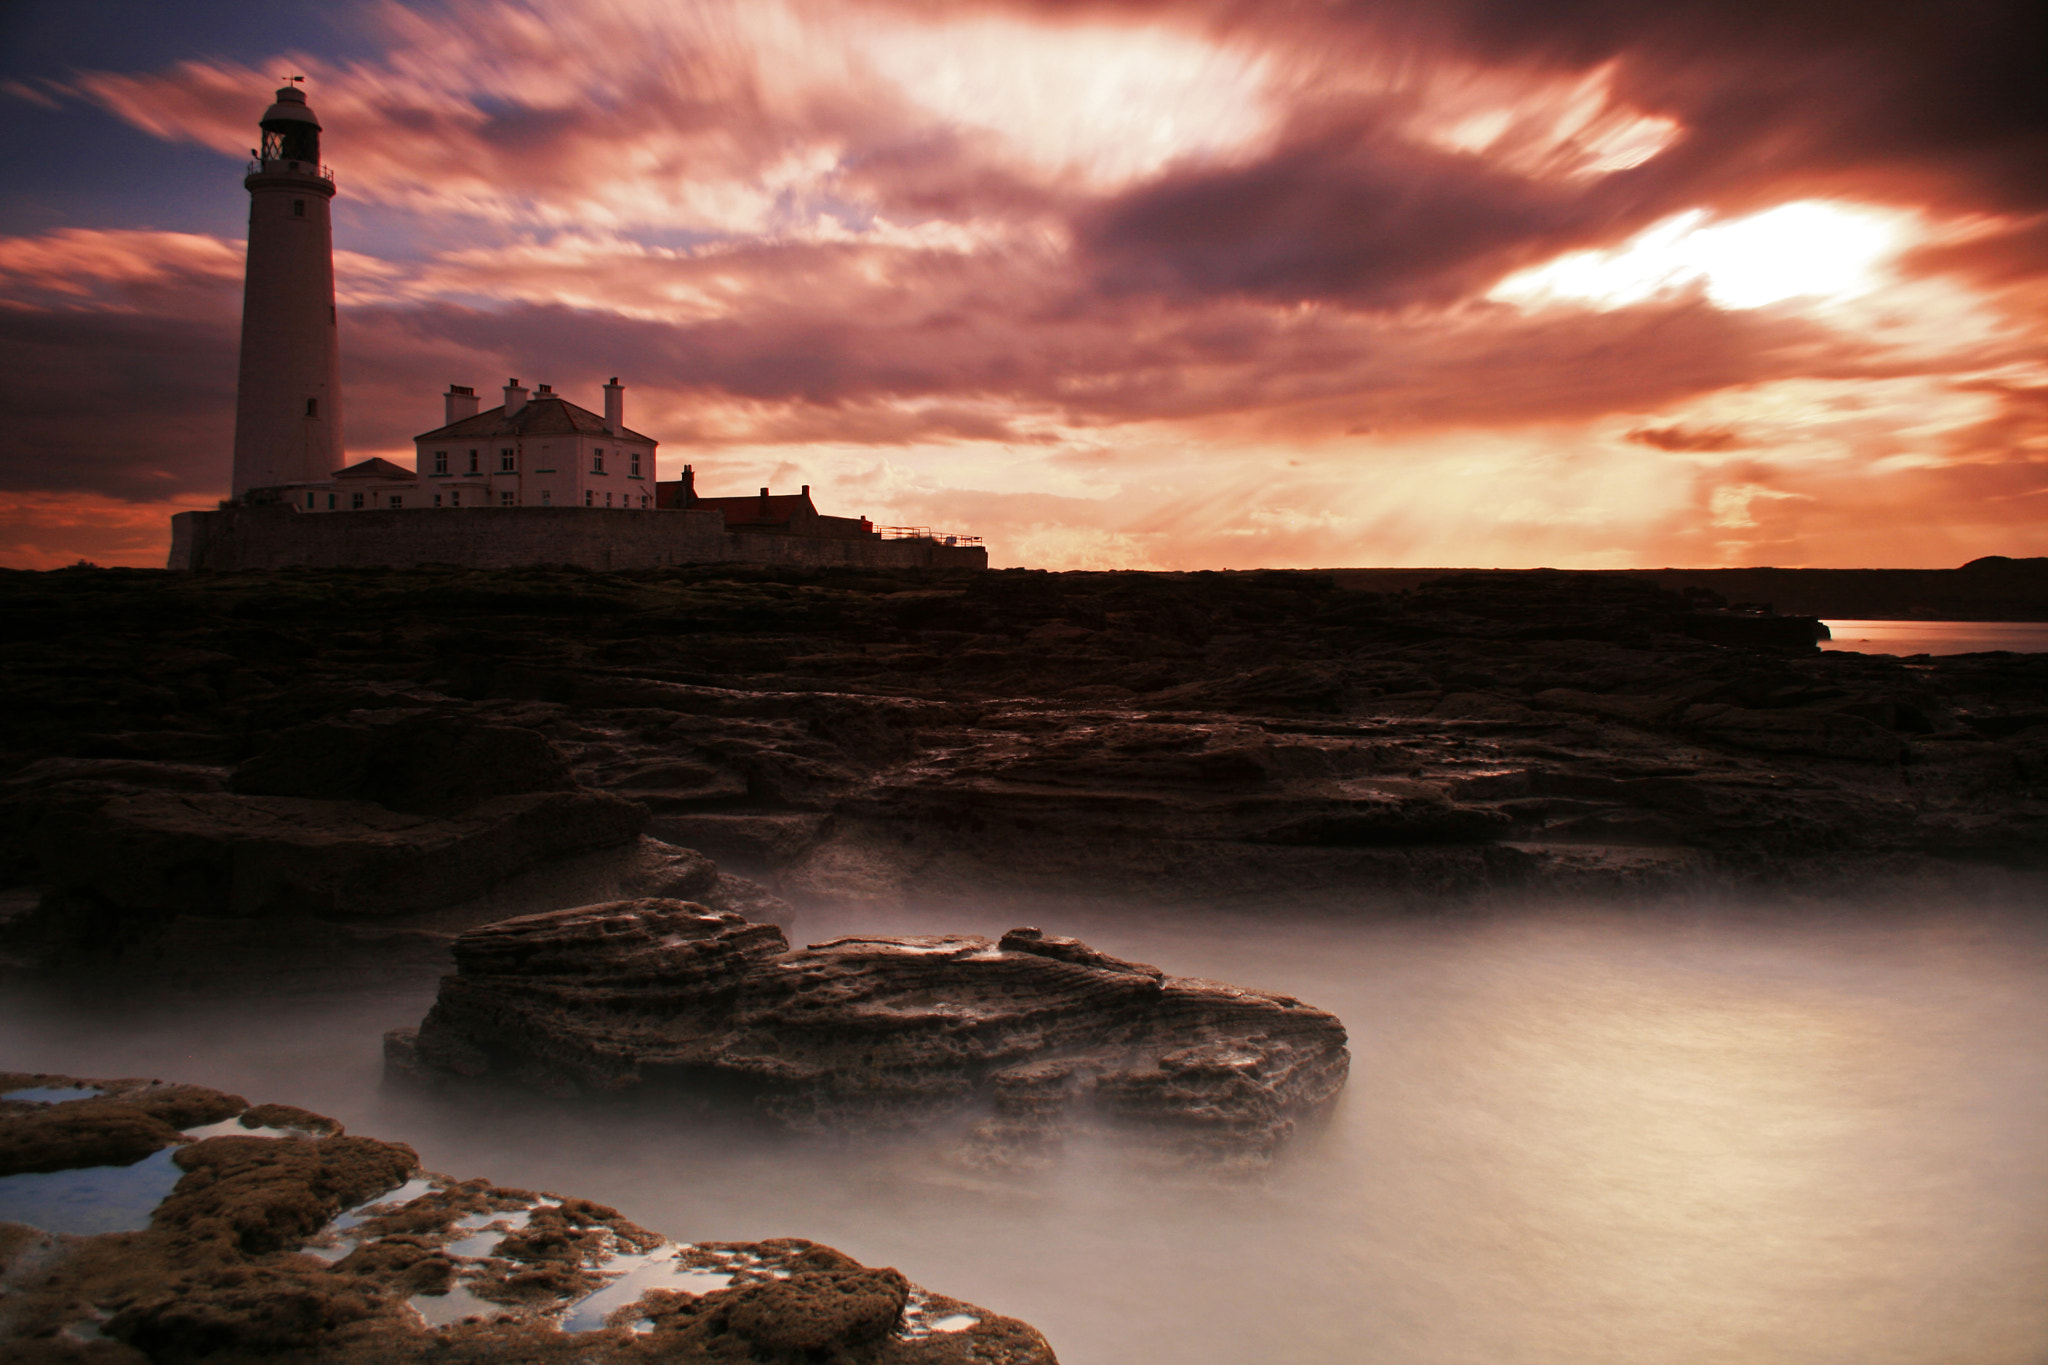 Photograph THE LIGHTHOUSE by Gary Turnbull on 500px